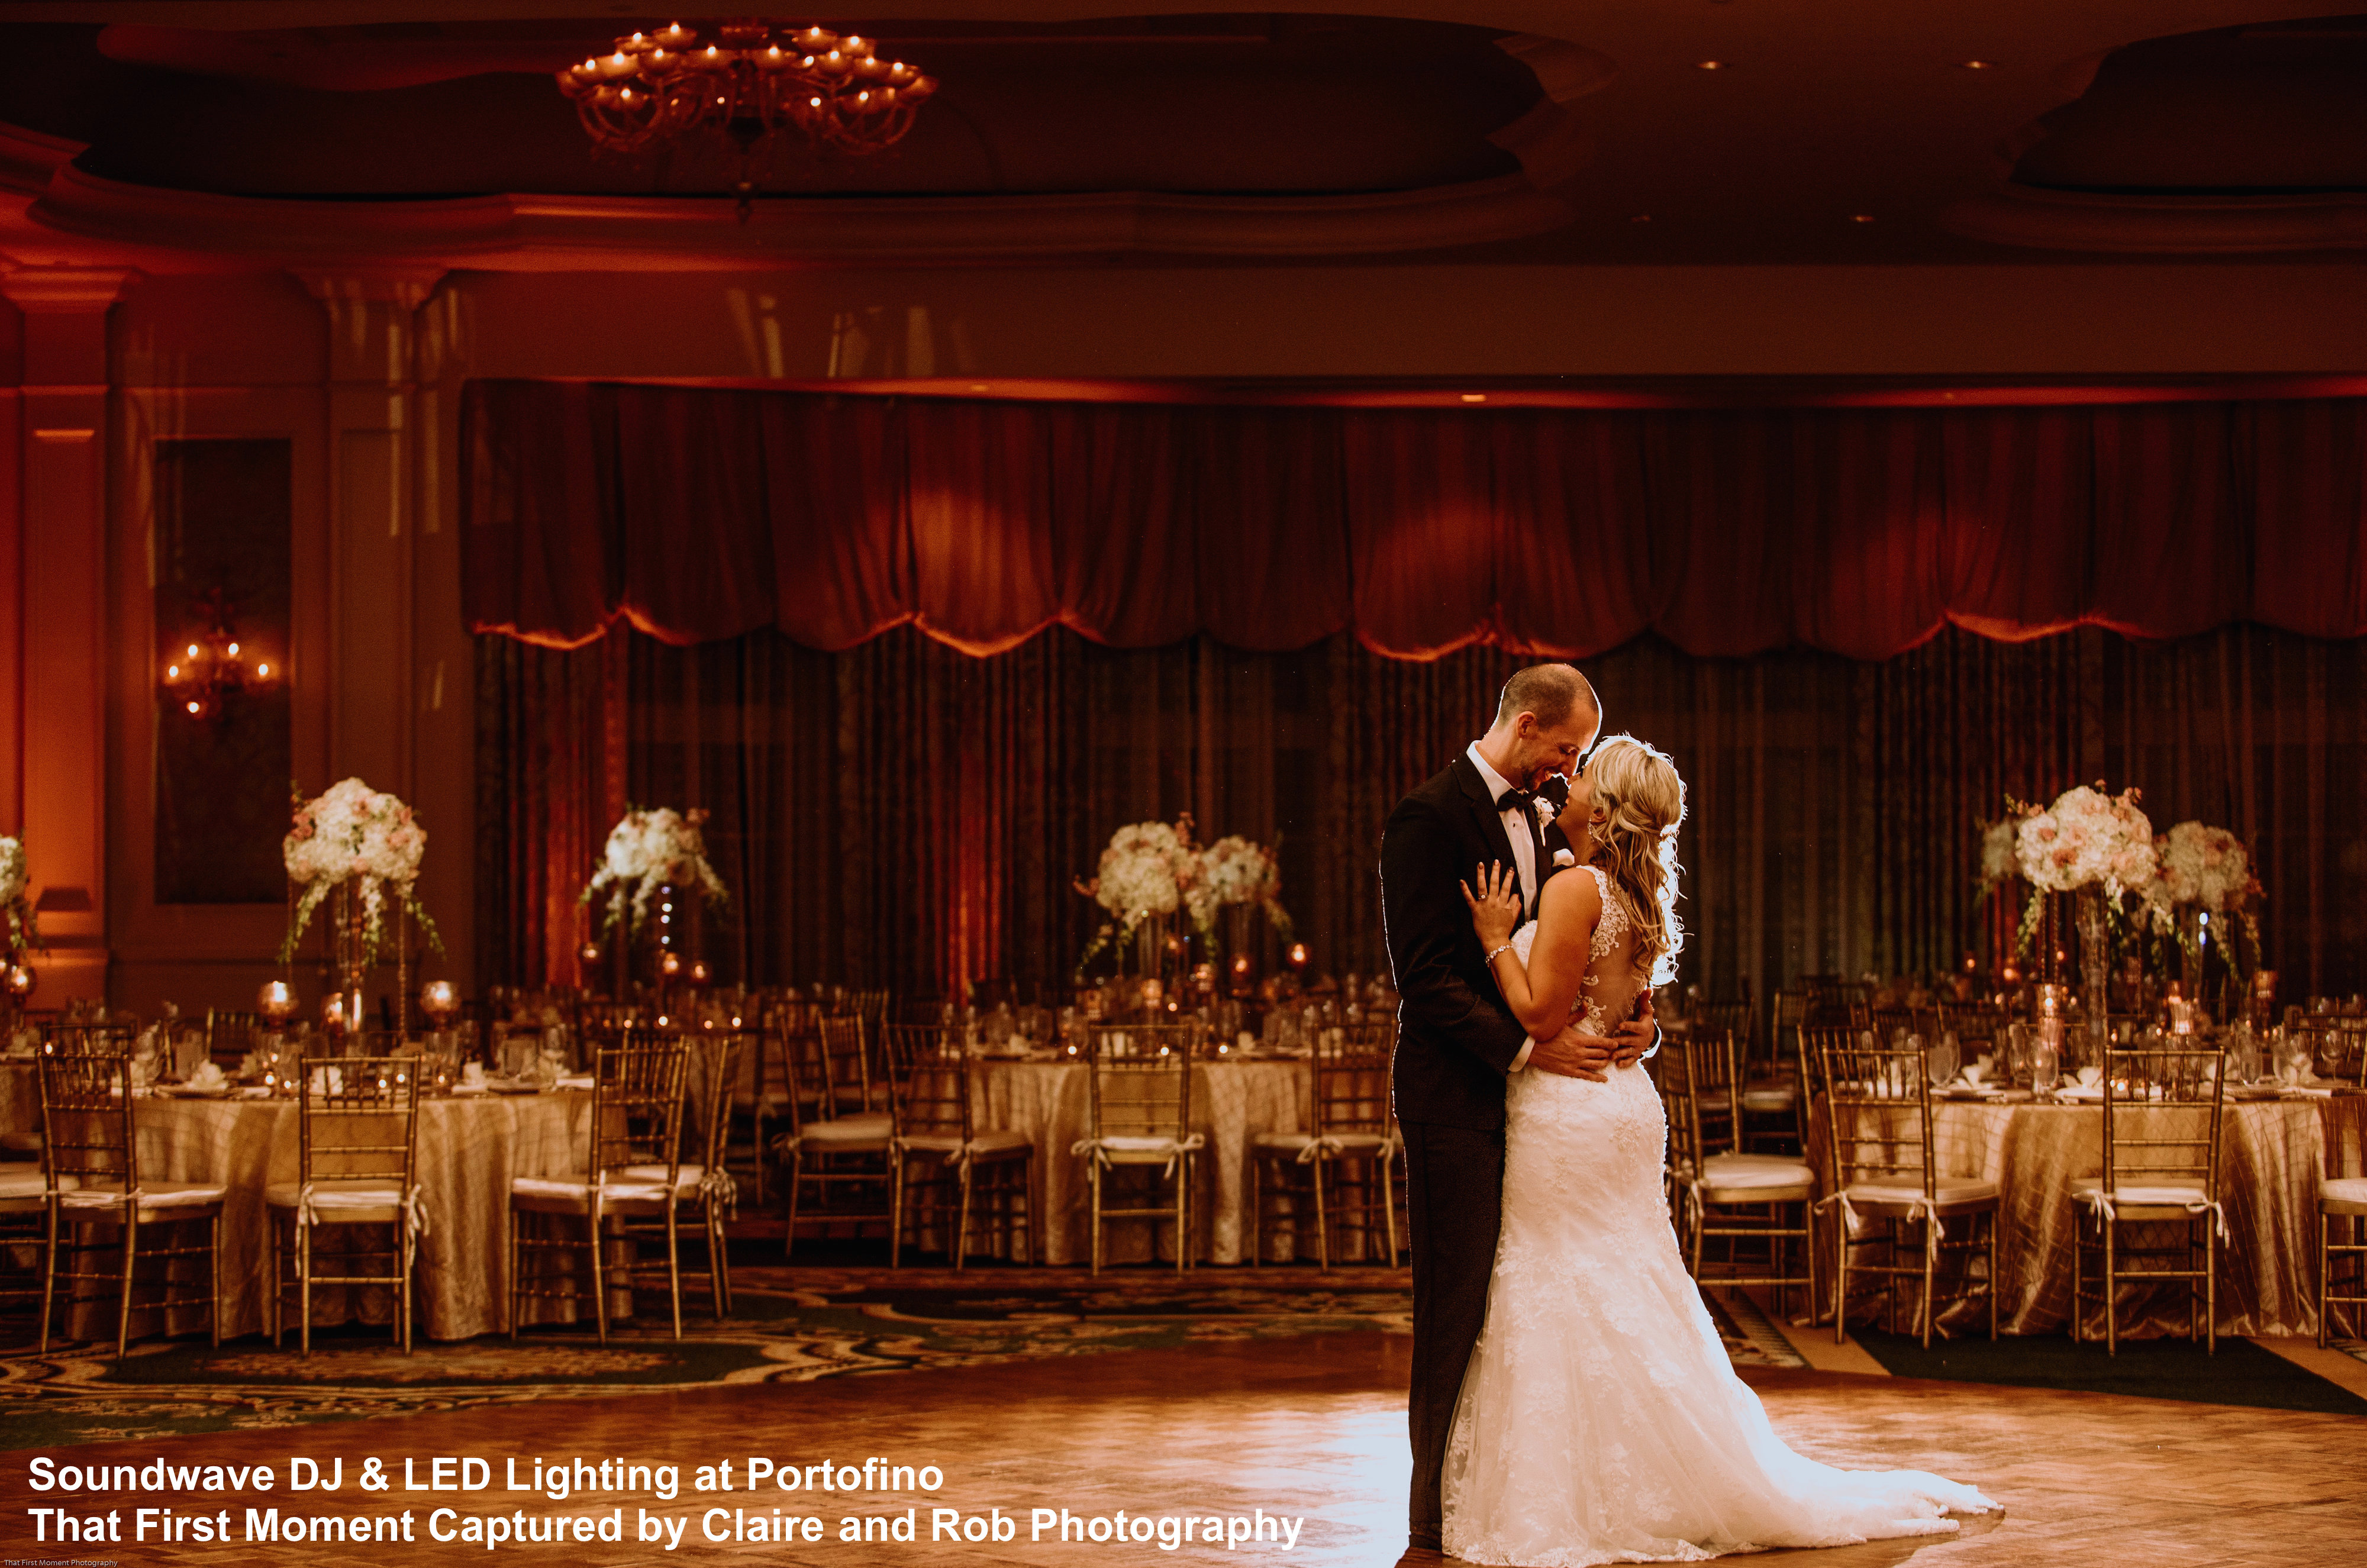 orlando wedding venue - orlando led wedding lighting - soundwave entertainment - orlando, fl